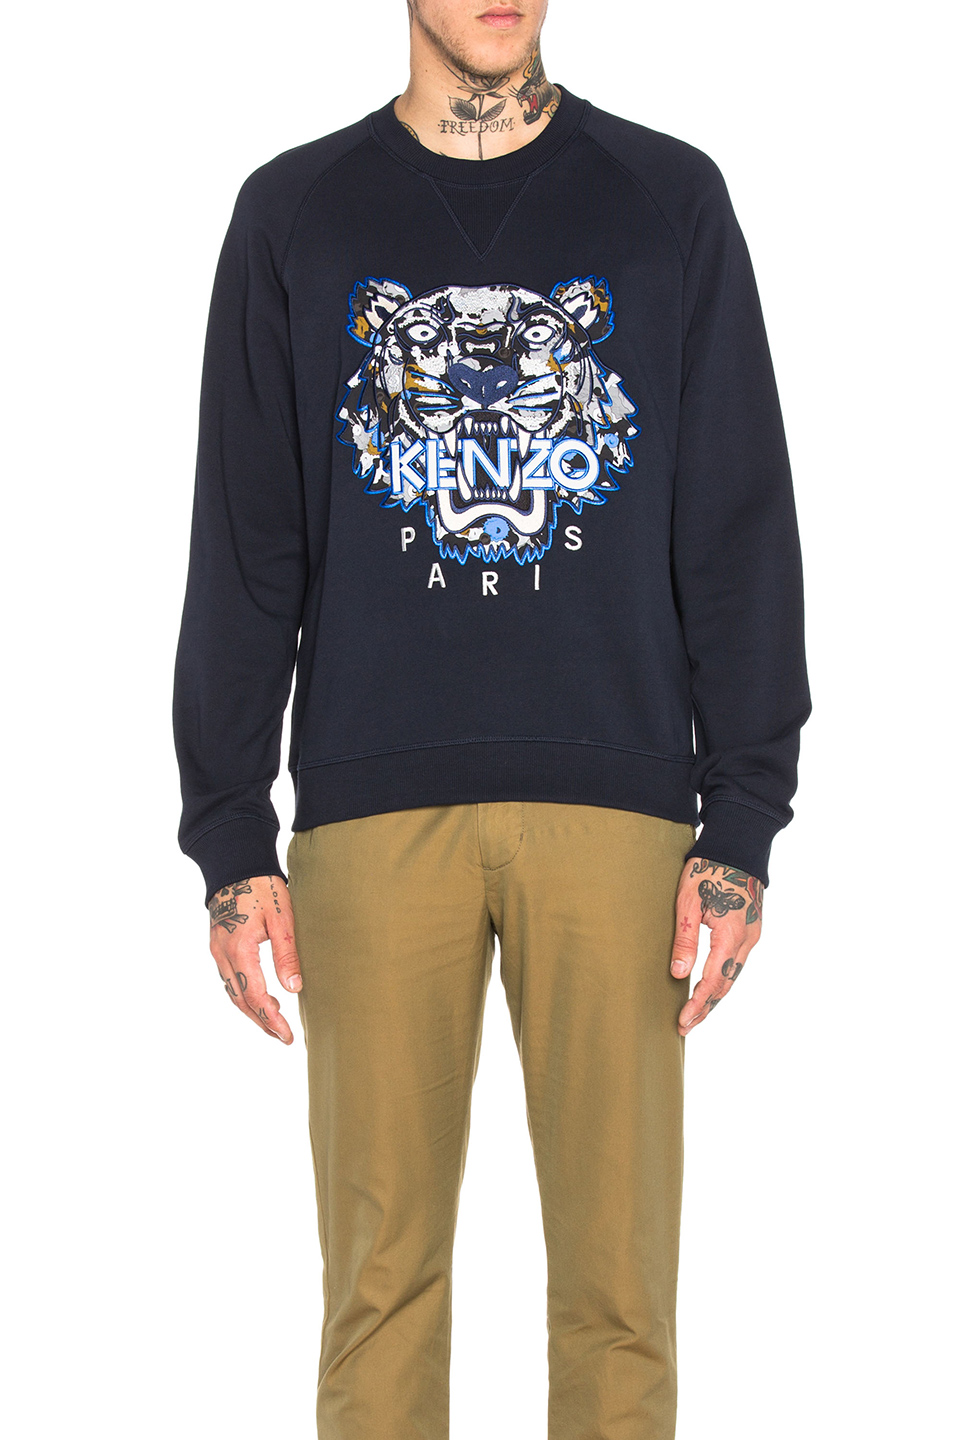 KENZO Moon Map Tiger Sweatshirt in Blue